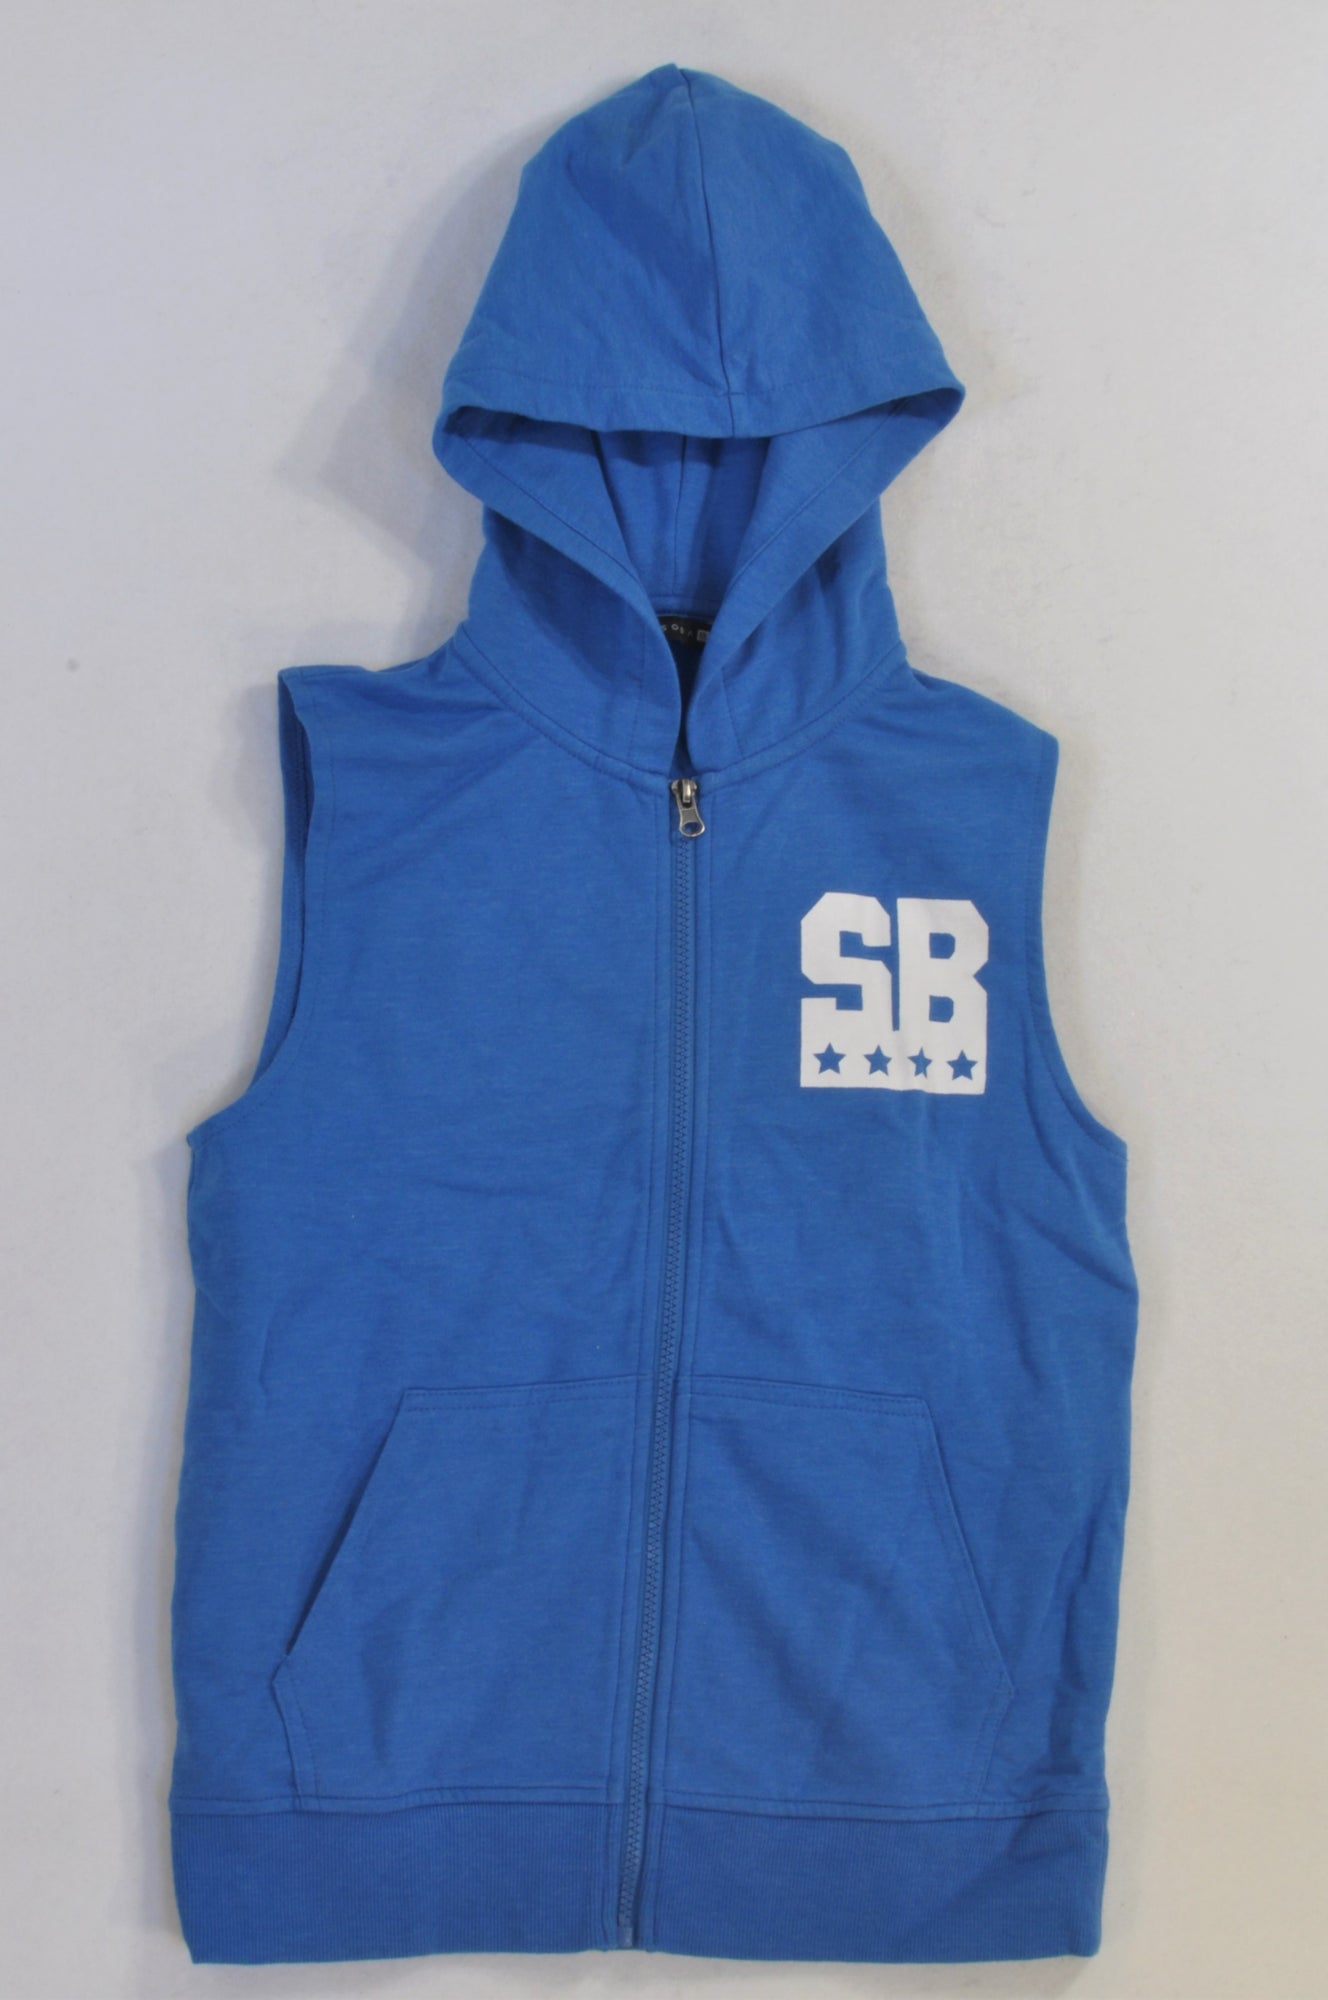 Soda Bloc Blue SB Body Warmer Boys 13-14 years